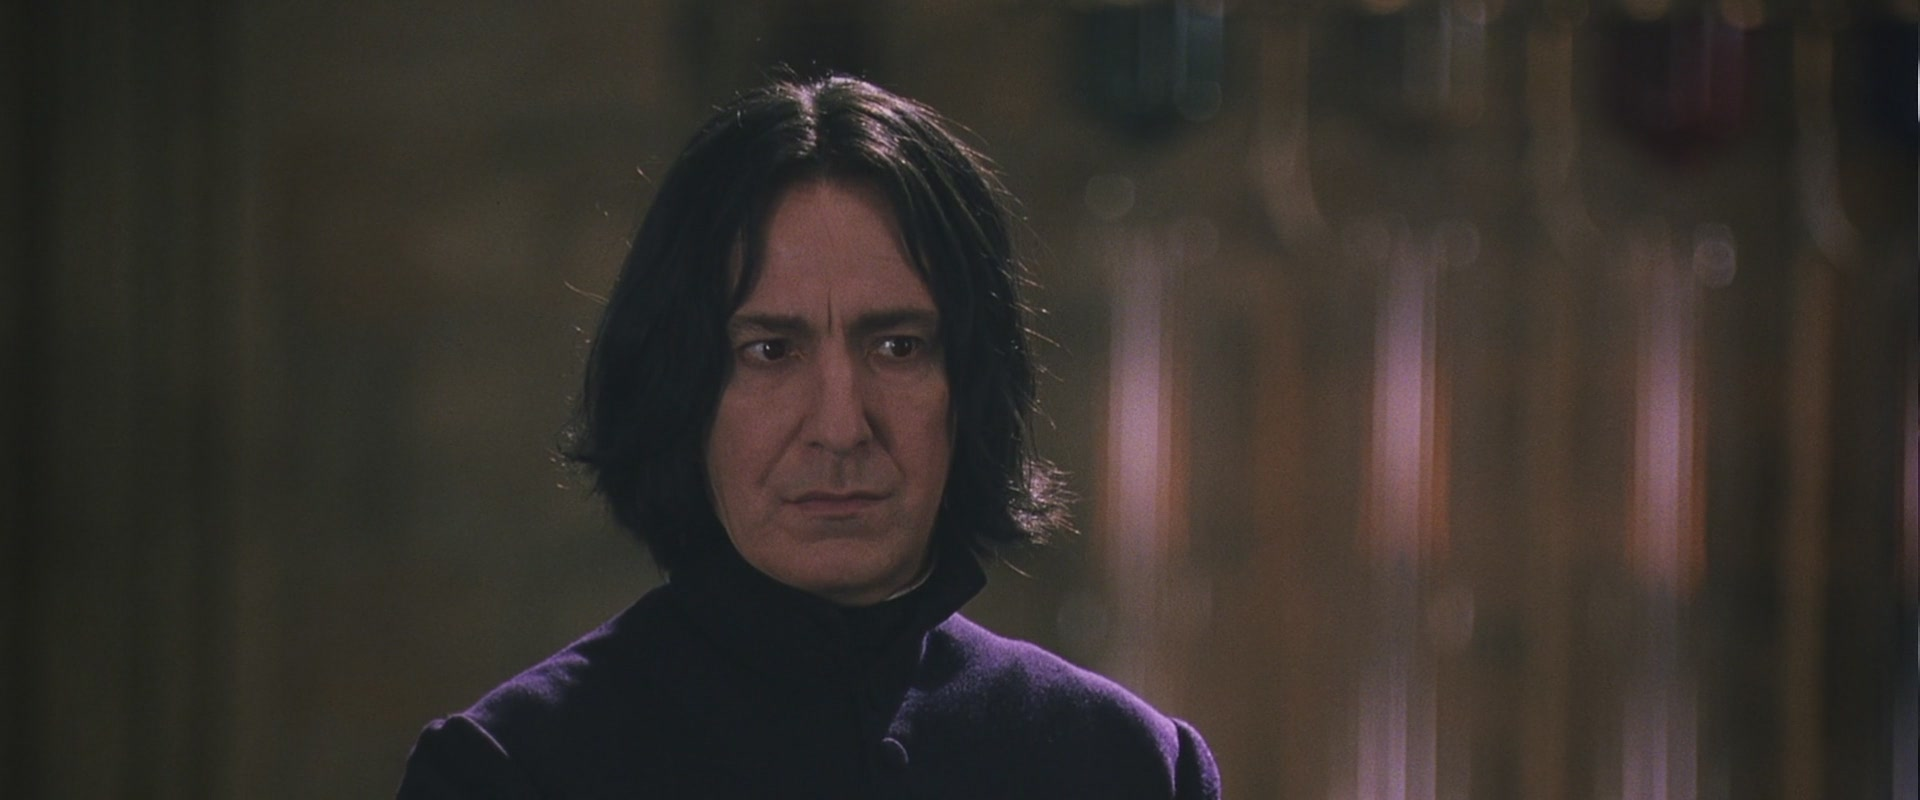 image harry potter and the chamber of secrets bluray severus image harry potter and the chamber of secrets bluray severus snape 27573522 1920 800 jpg warner bros characters wiki fandom powered by wikia